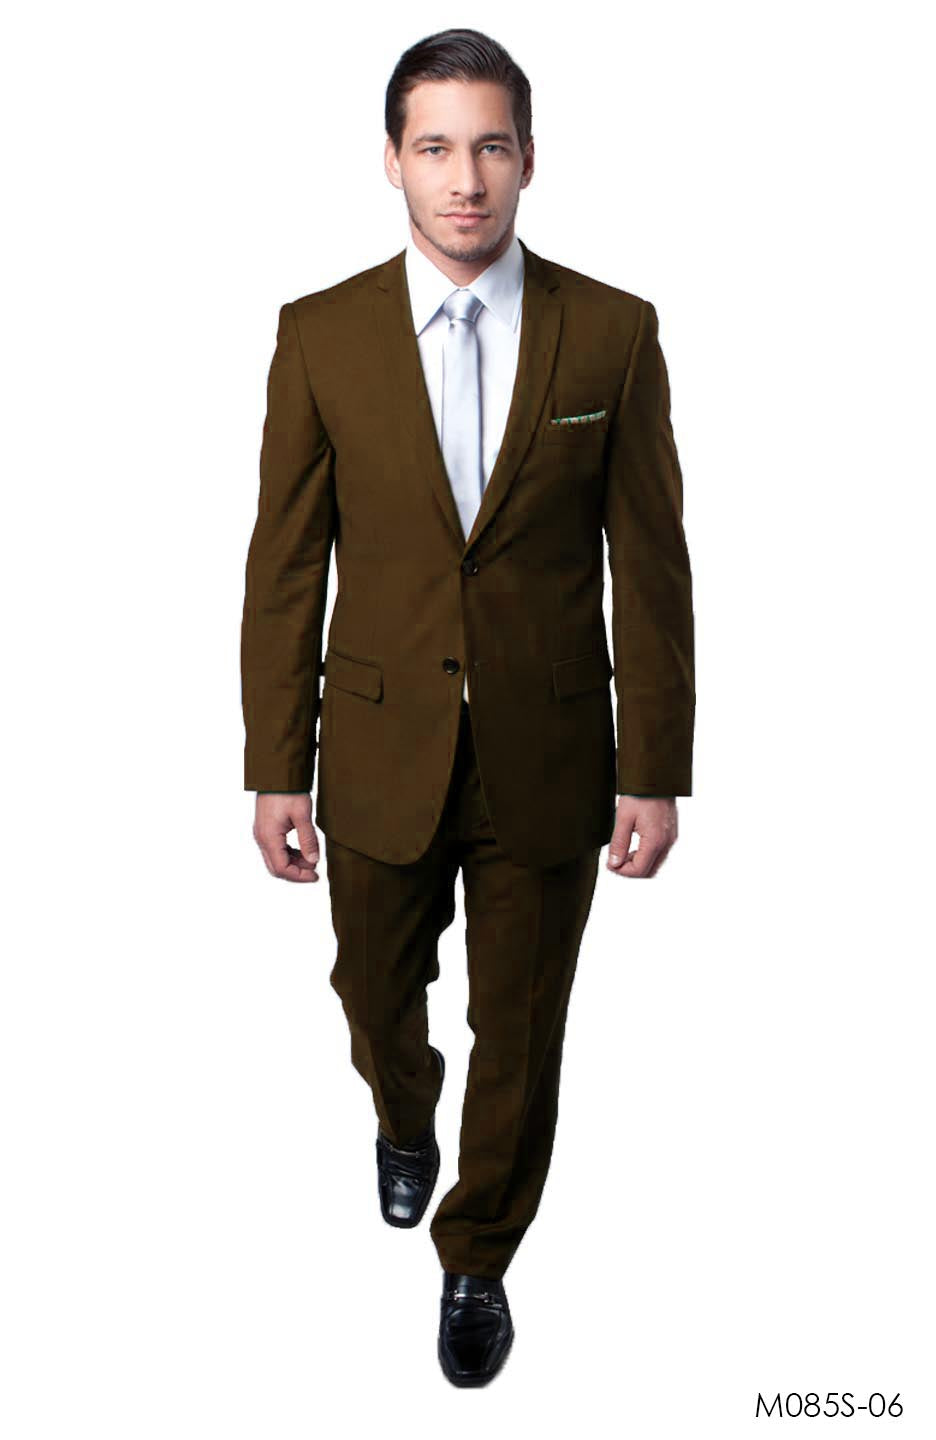 Brown Suit For Men Formal Suits For All Ocassions M085S-06